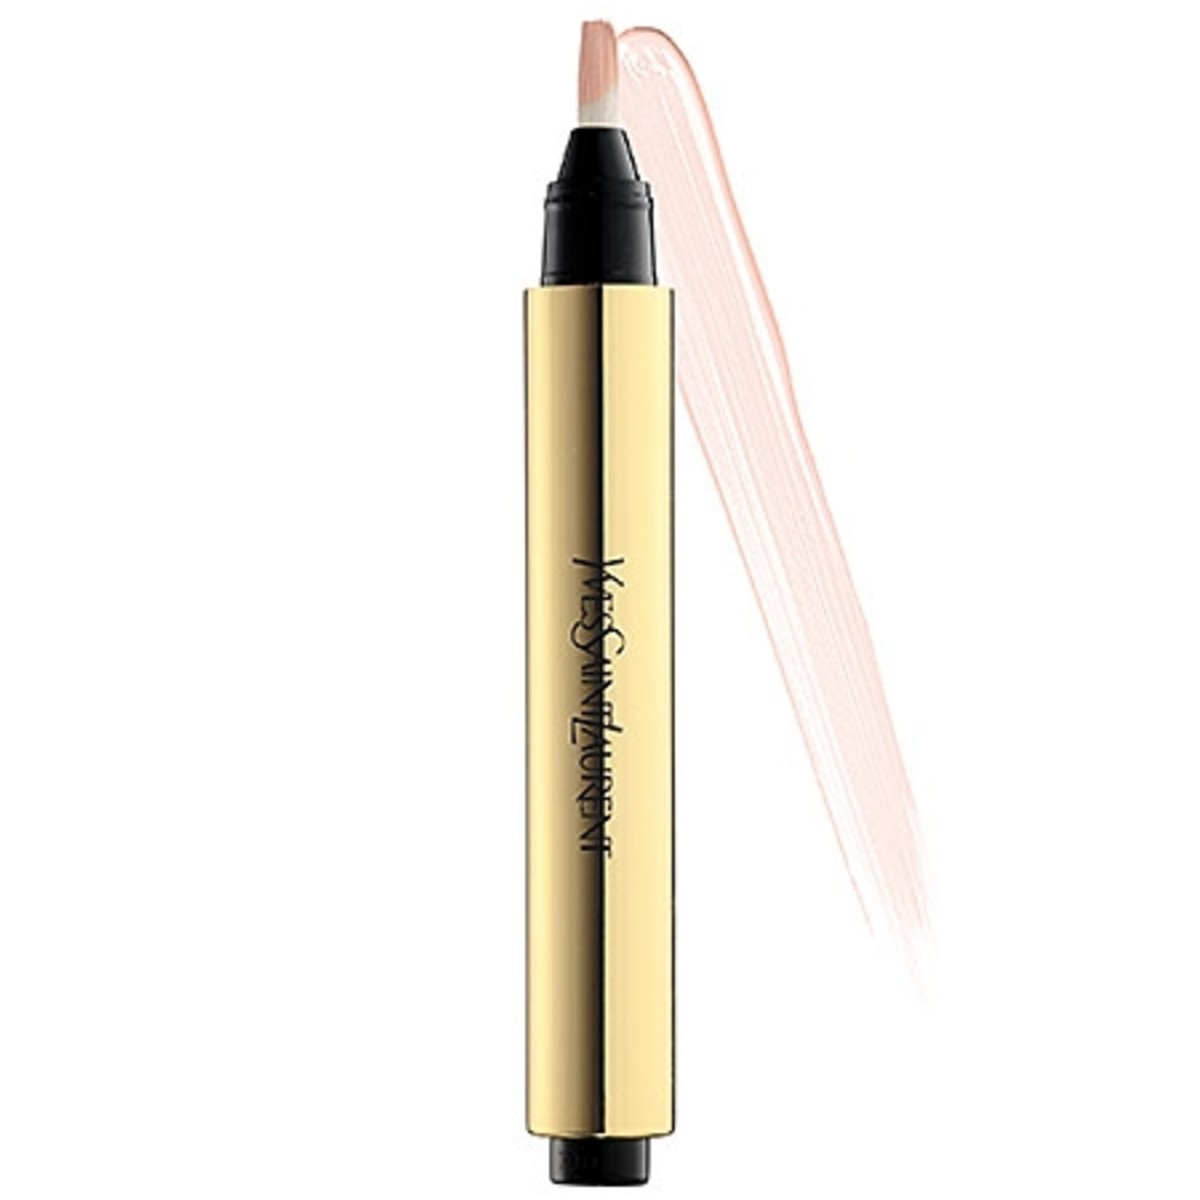 Yves Saint Laurent Touche Eclat in 1, Luminous Radiance